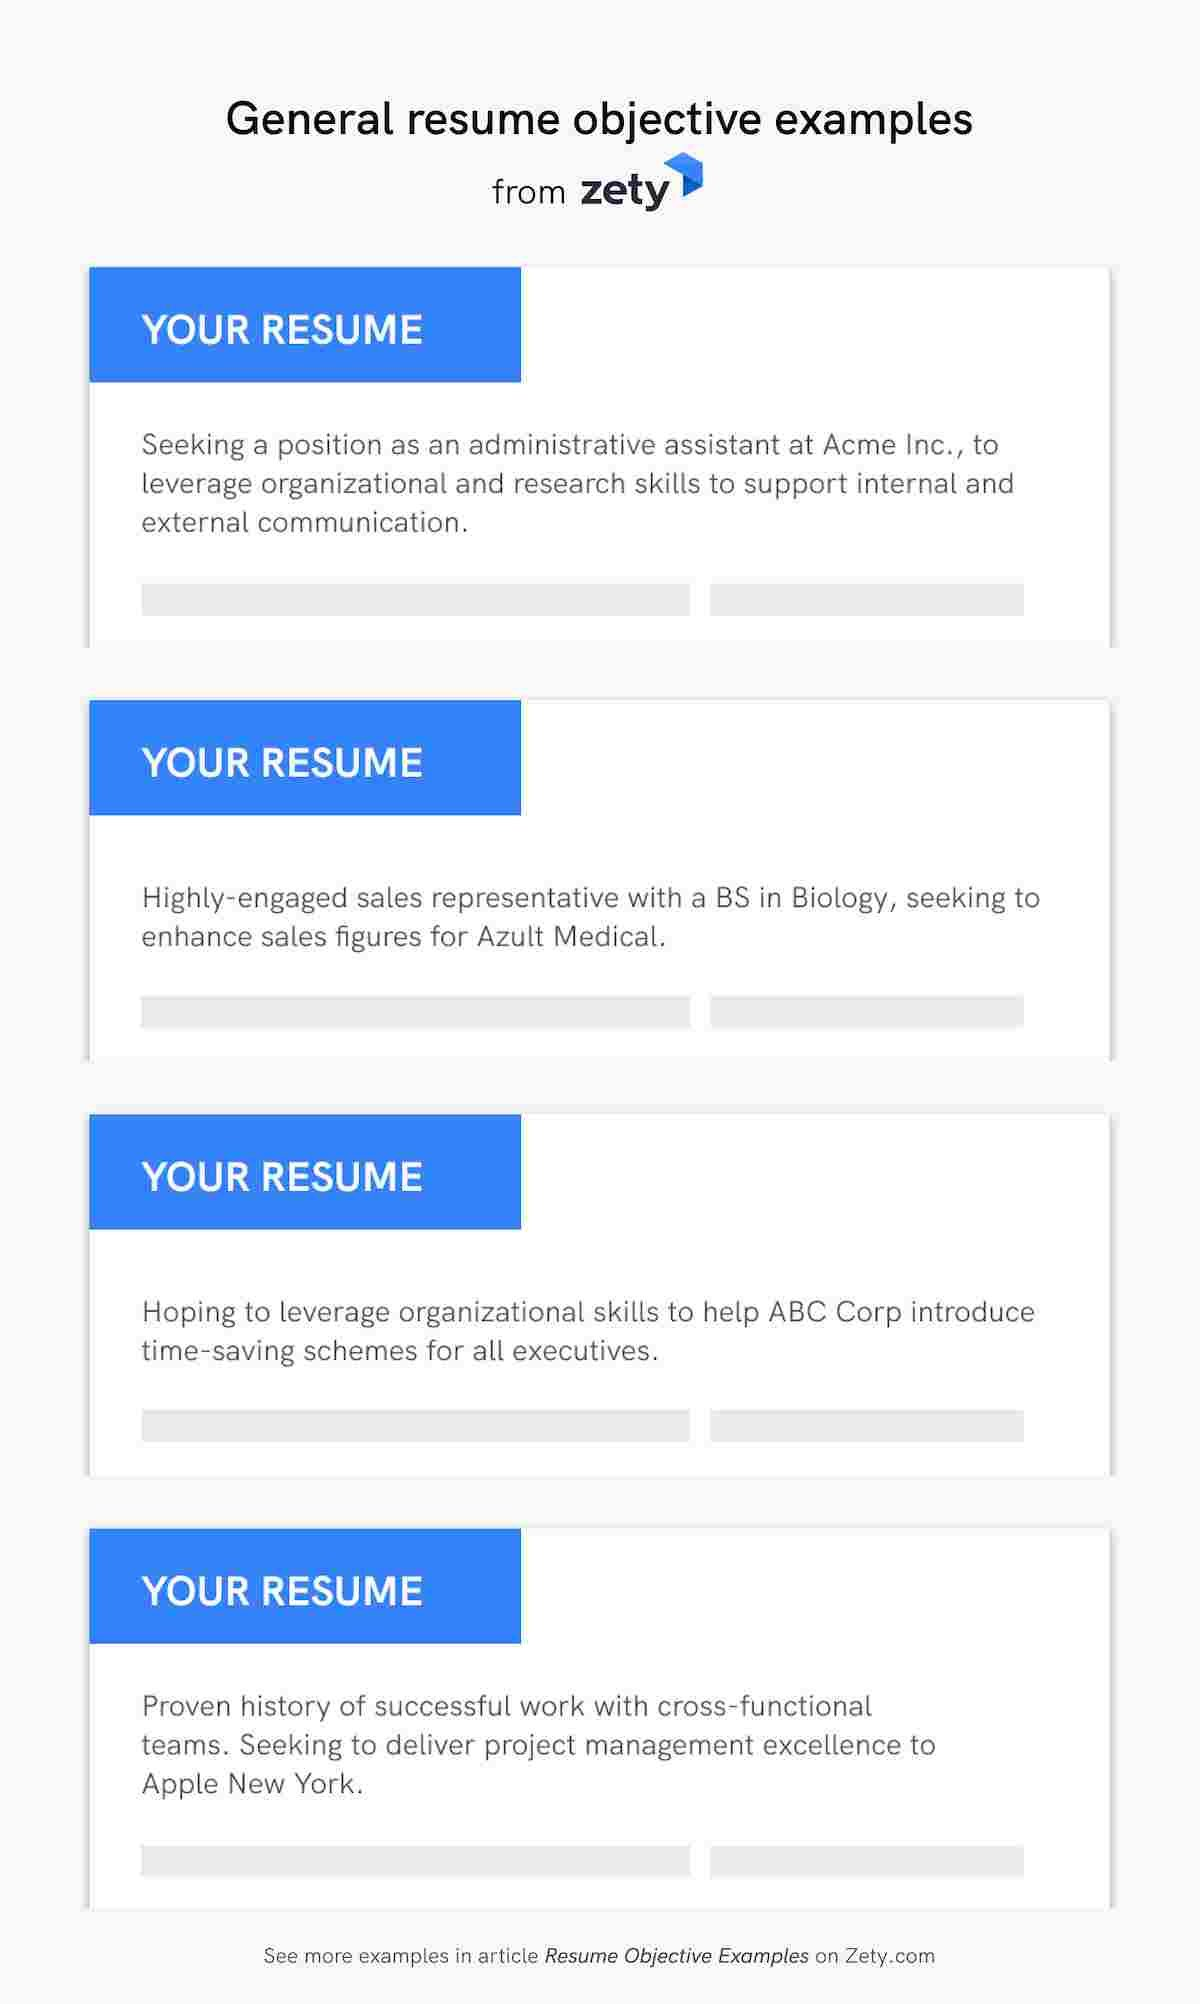 resume objective examples career objectives for all jobs general statements ahmed shehab Resume General Resume Objective Statements